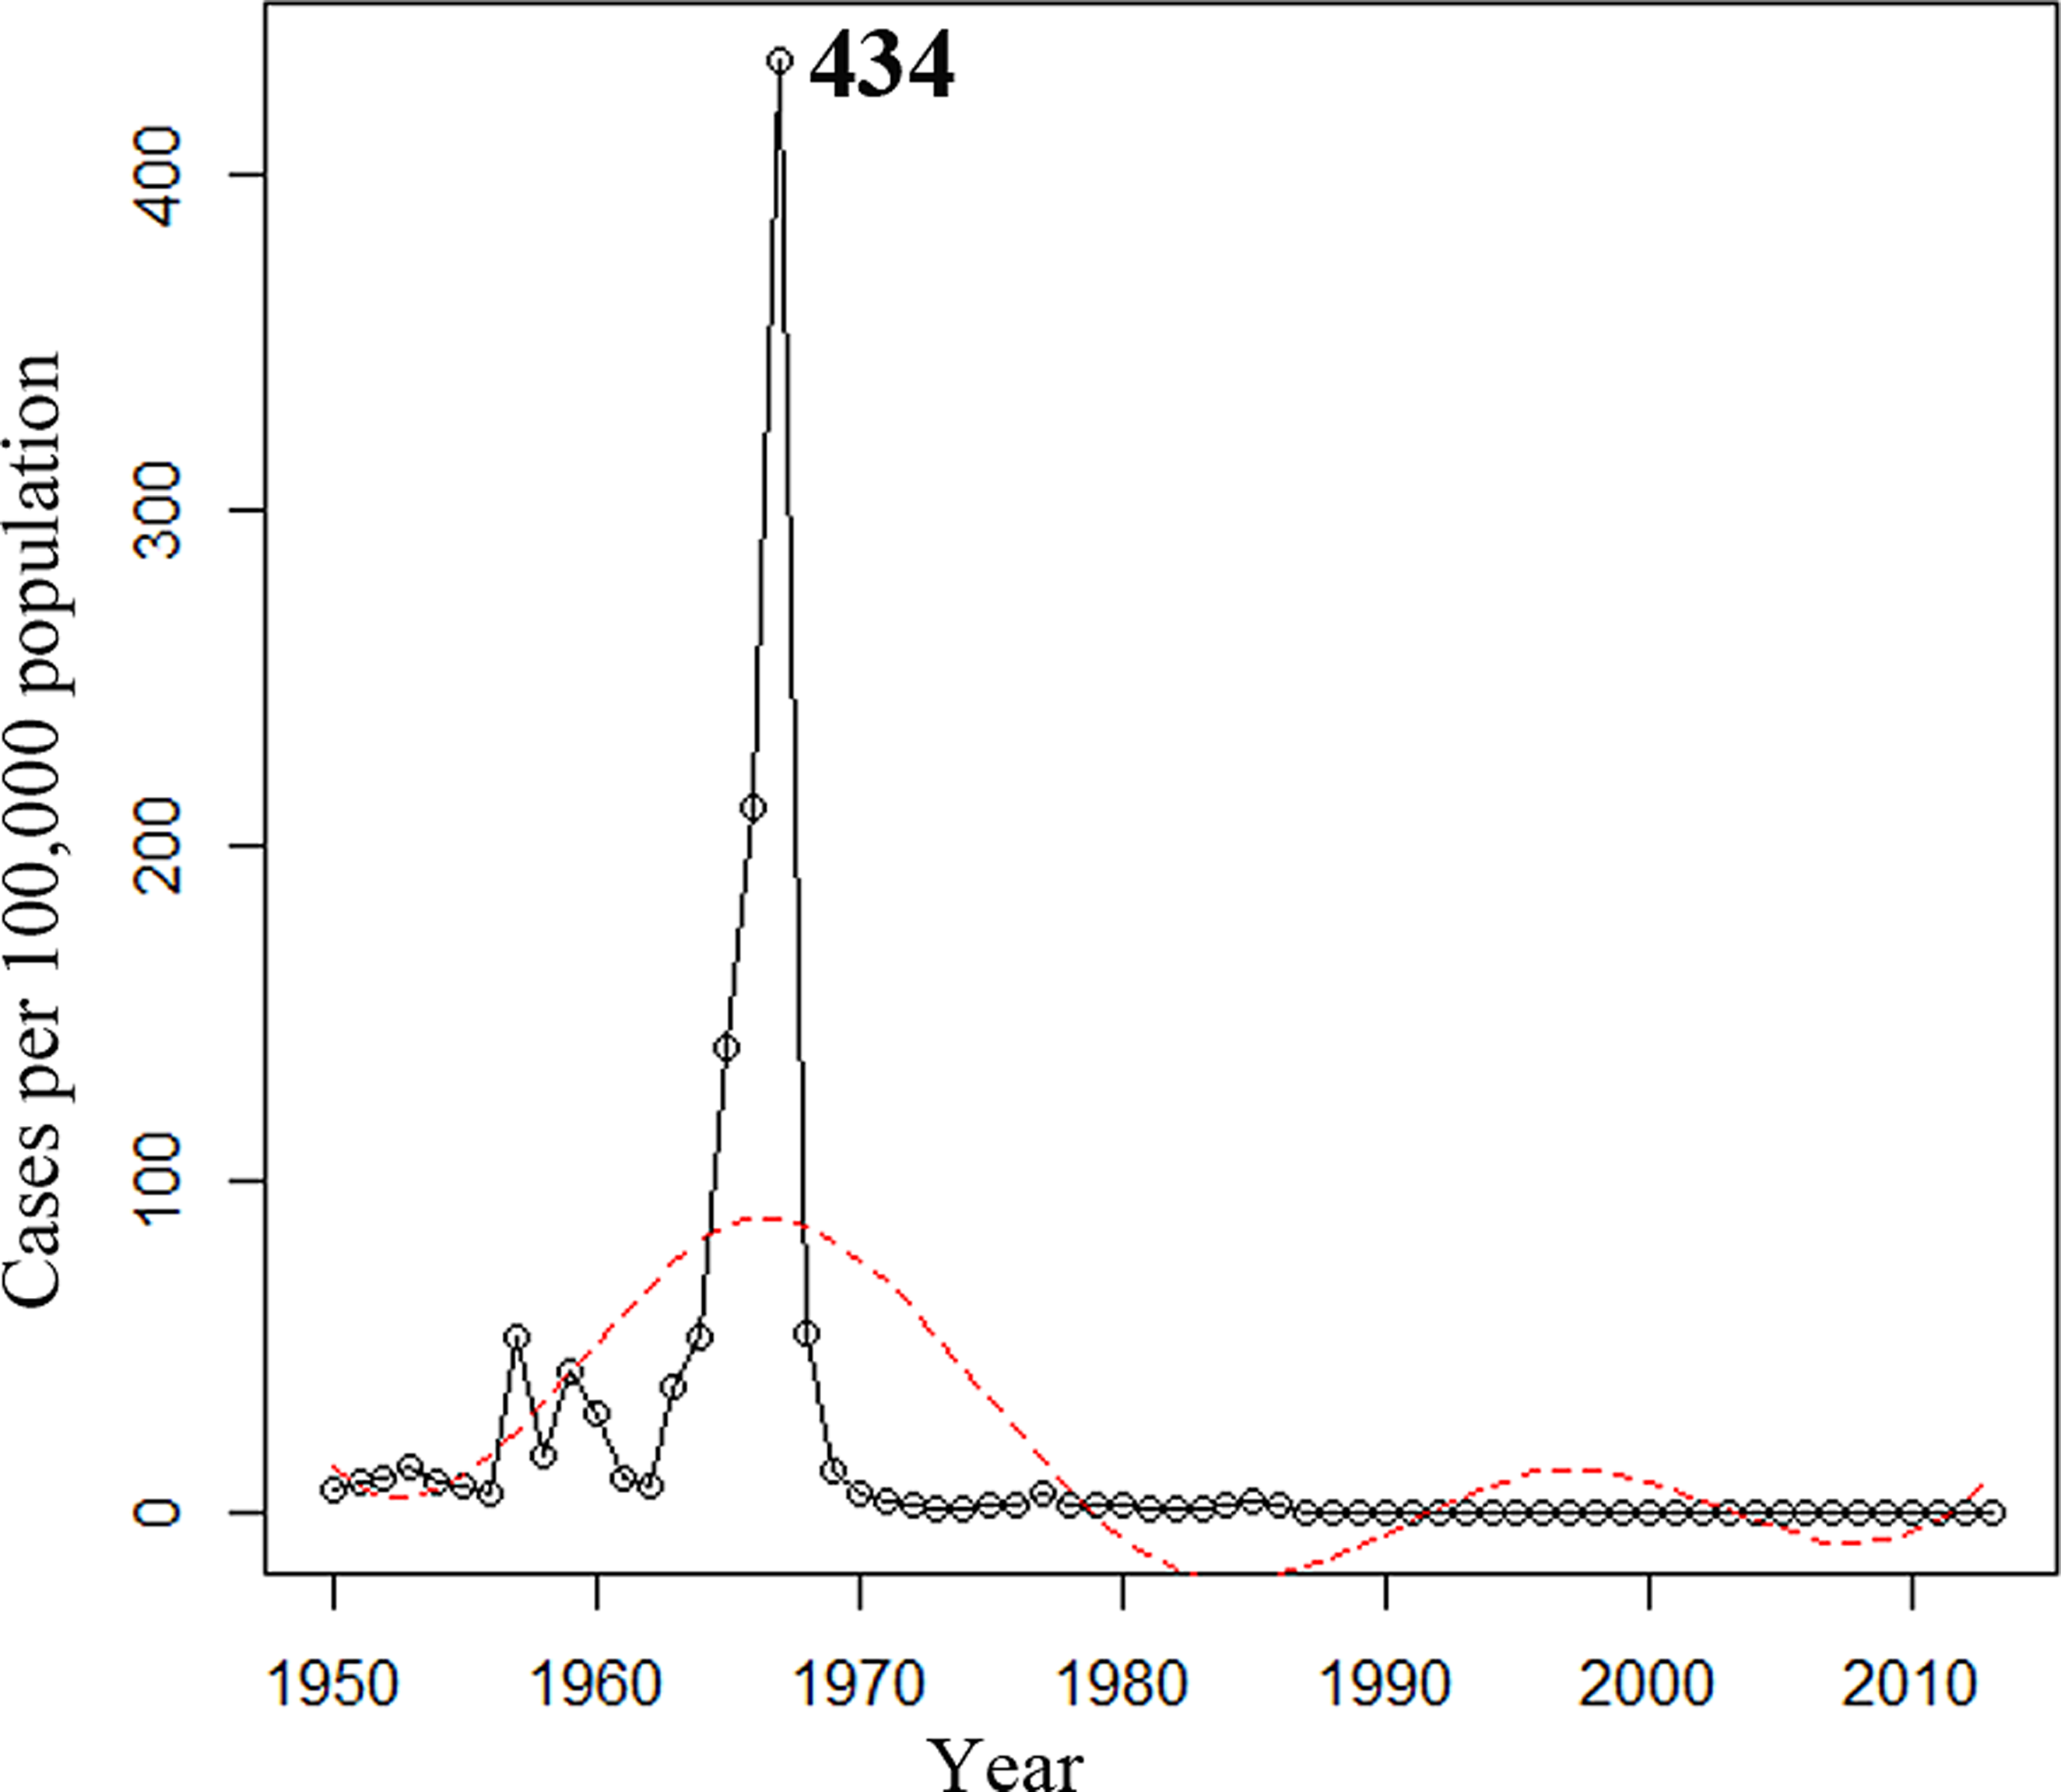 Annual incidence of reported cases of meningococcal disease in Shanghai from 1950 to 2013.